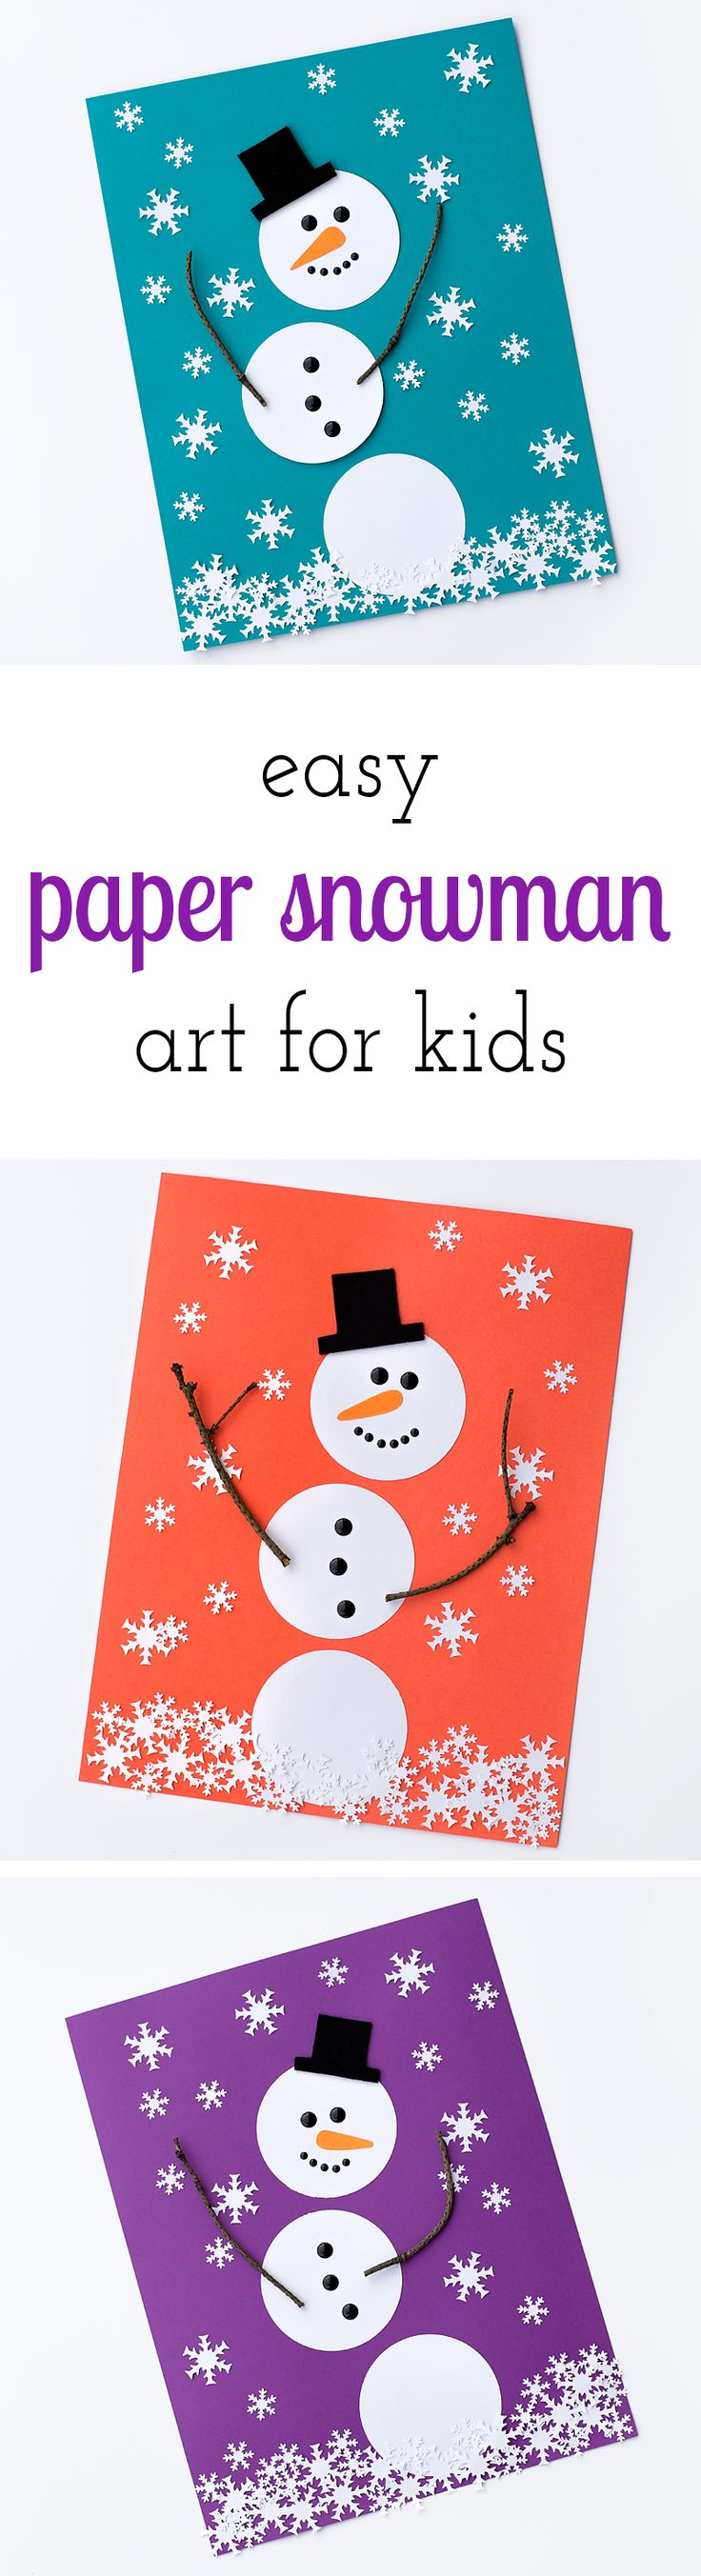 Easy Paper Snowman Art is a simple, fun, and inexpensive winter art activity for kids. Perfect for crafters of all ages! via @https://www.pinterest.com/fireflymudpie/